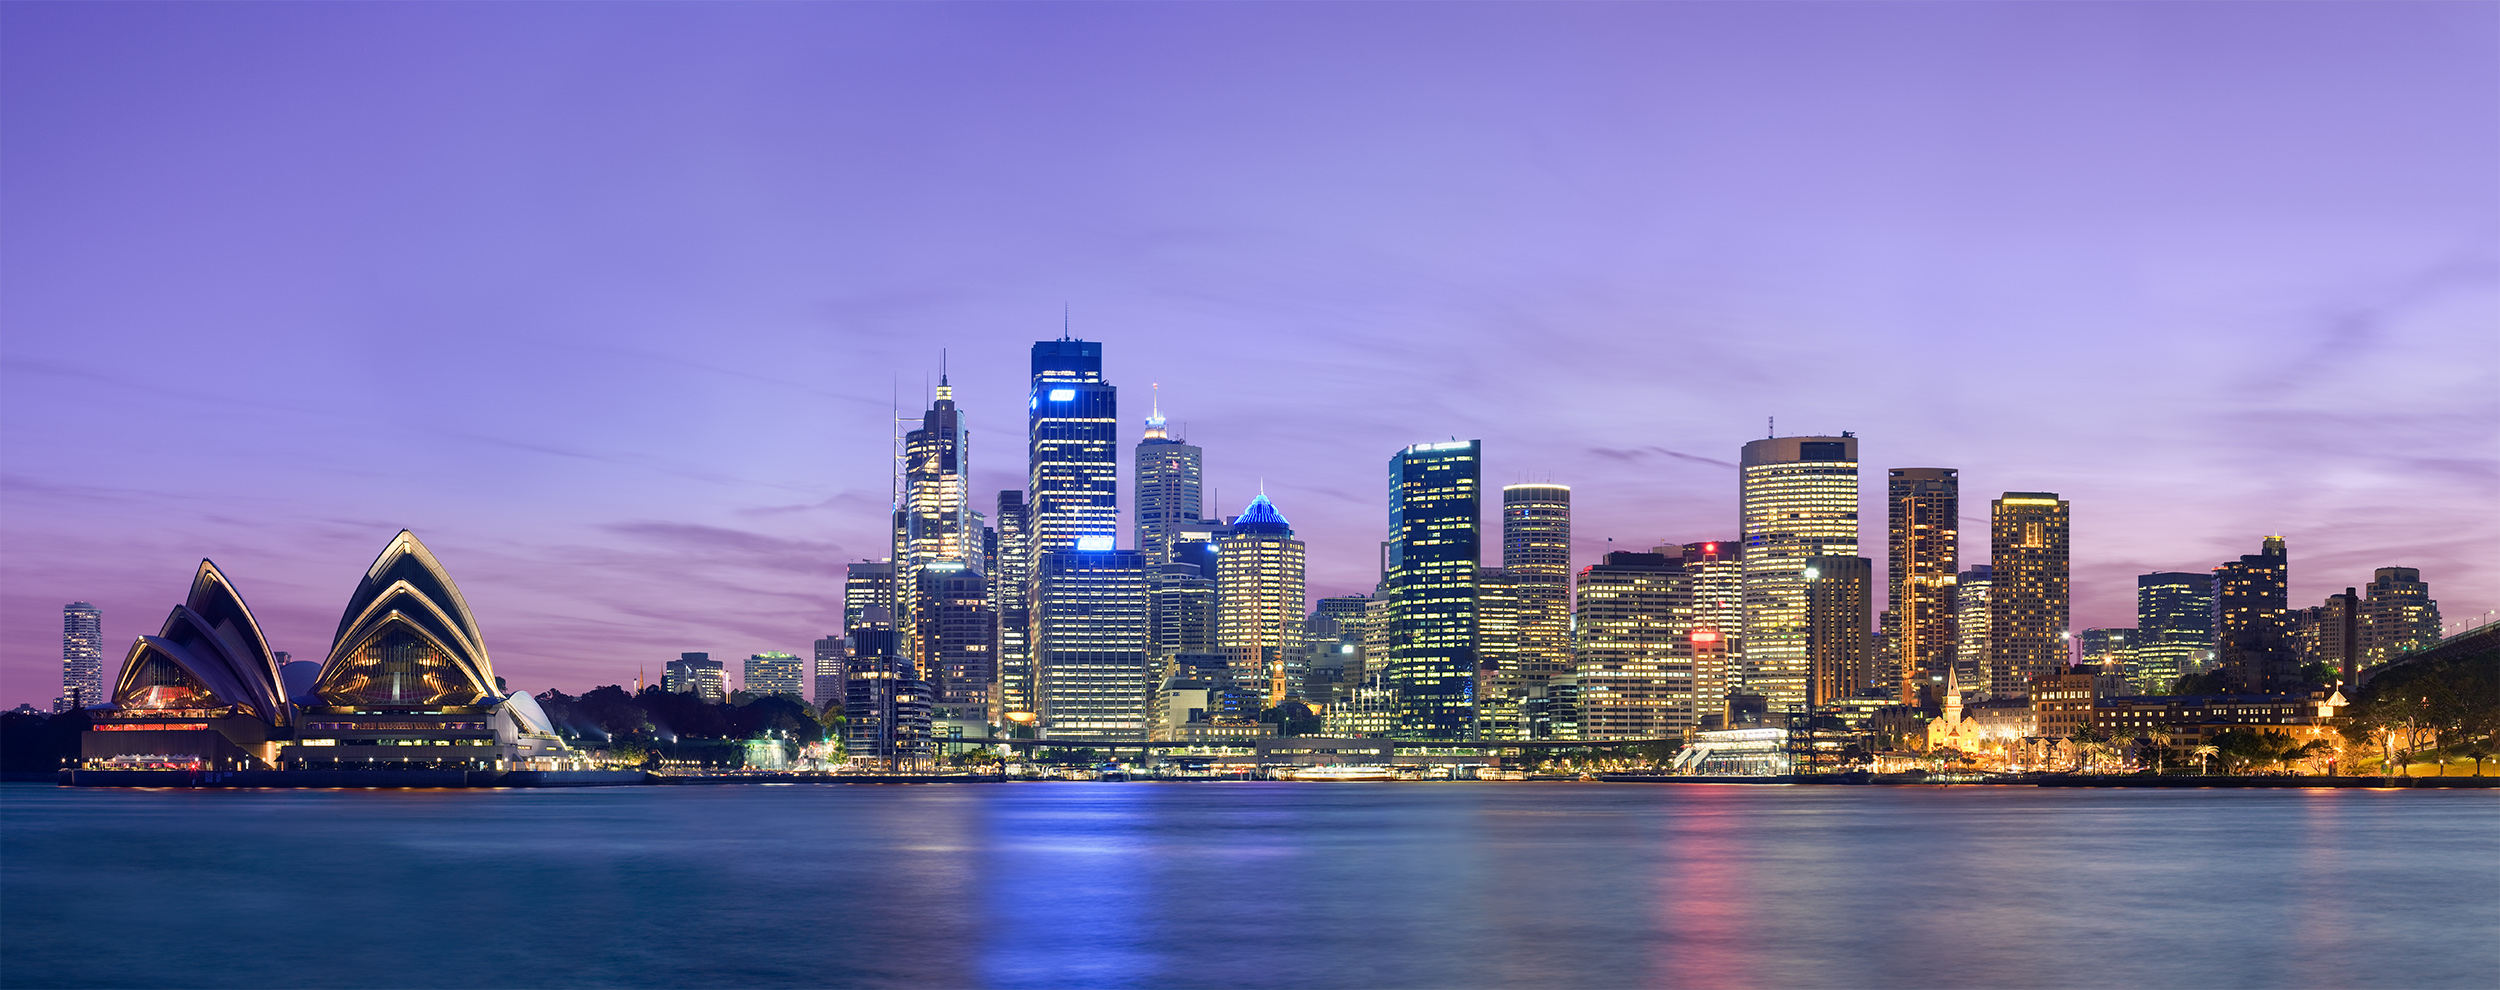 File:Sydney skyline at dusk - Dec 2008.jpg - Wikimedia Commons